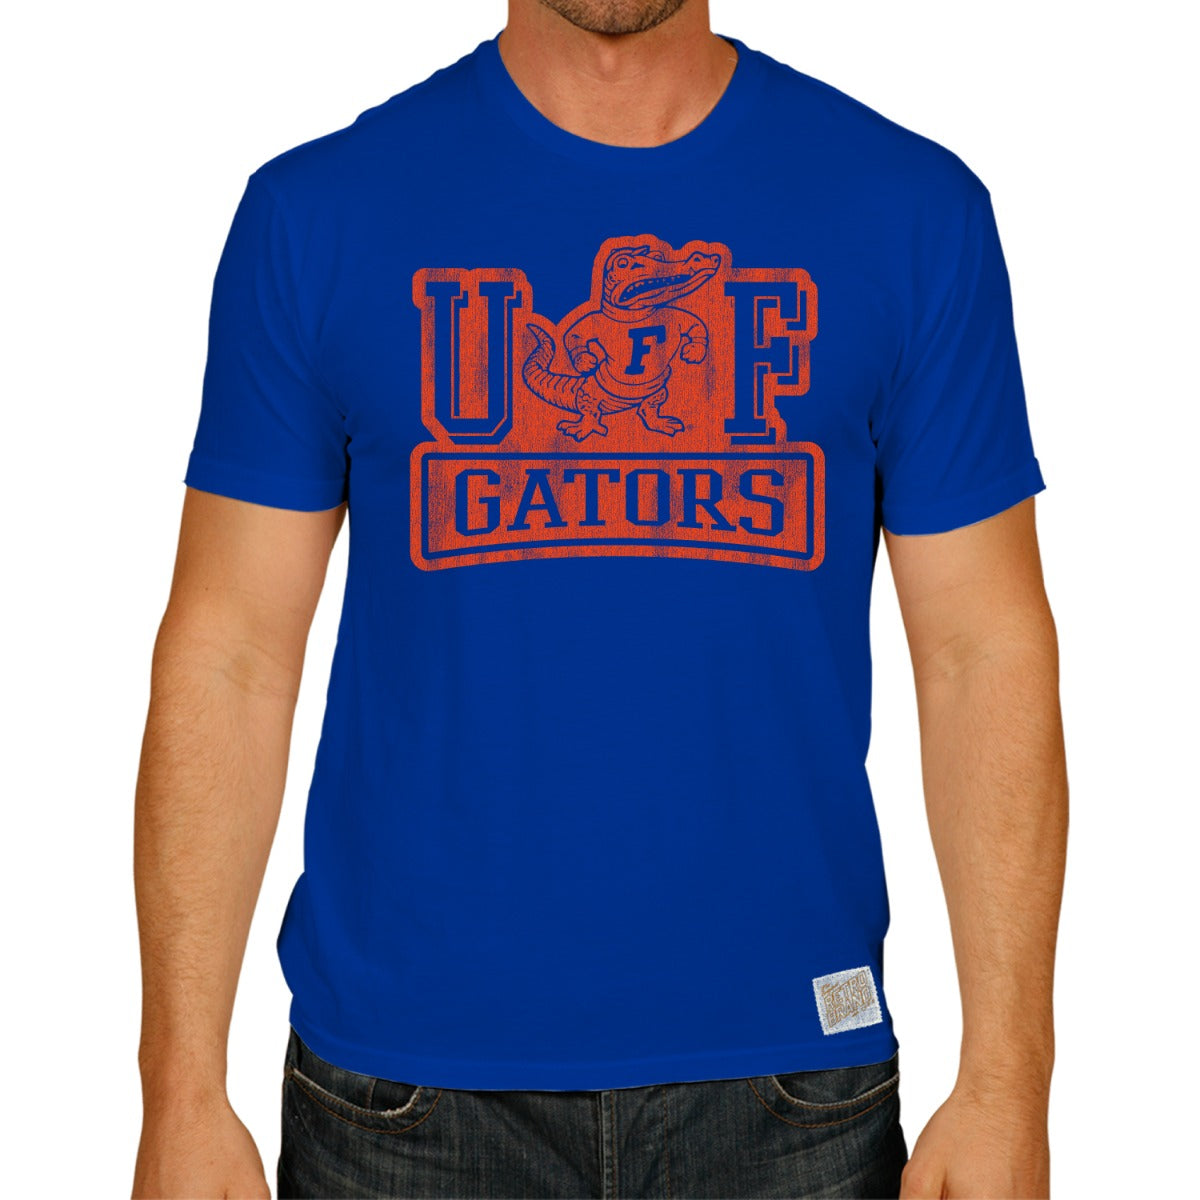 Florida Gators 100% Cotton Unisex Tee